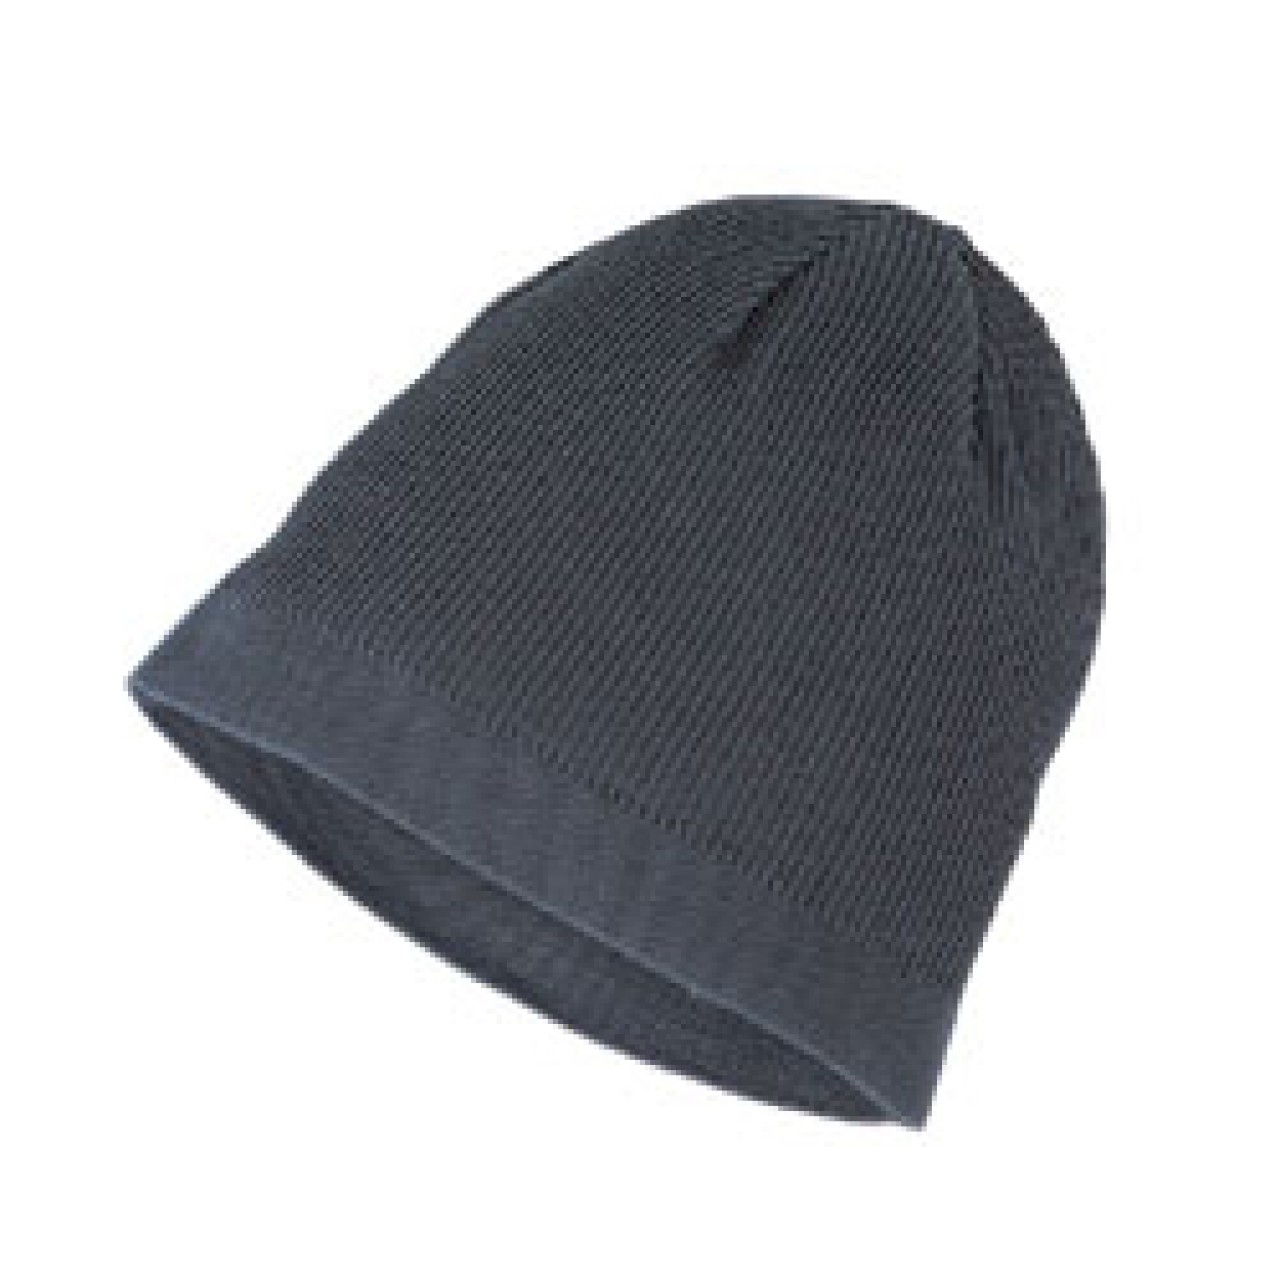 single layer toque $12